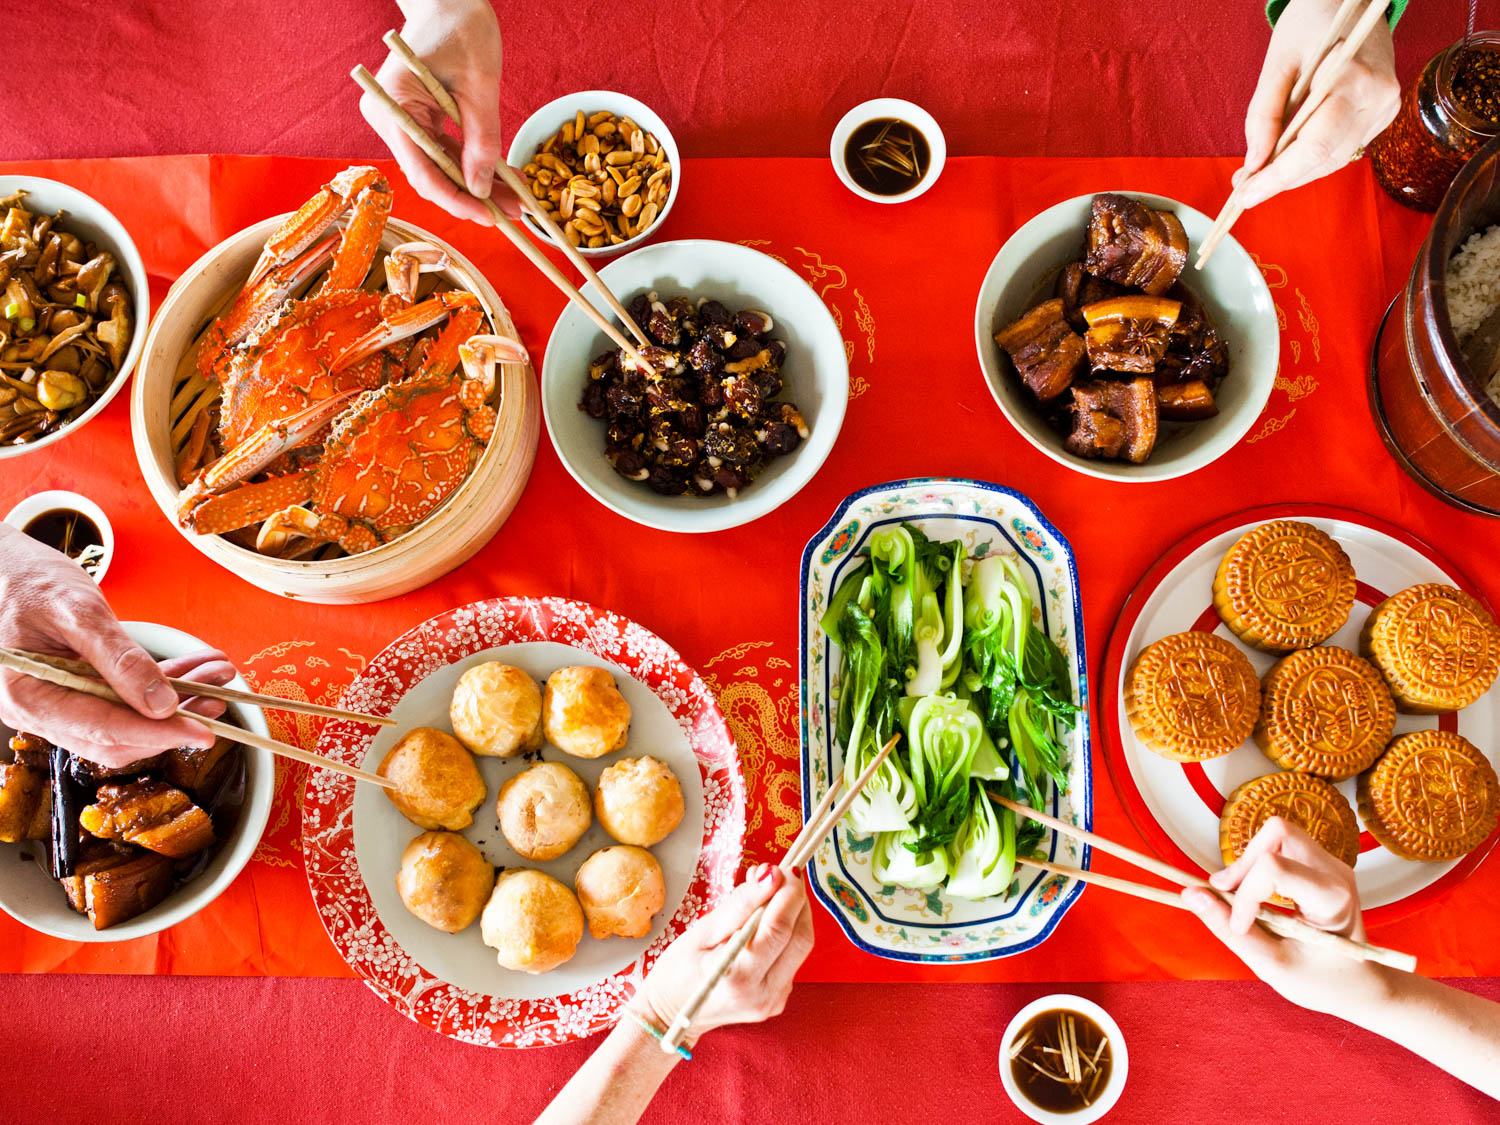 Moon Festival Feast - Delicious!